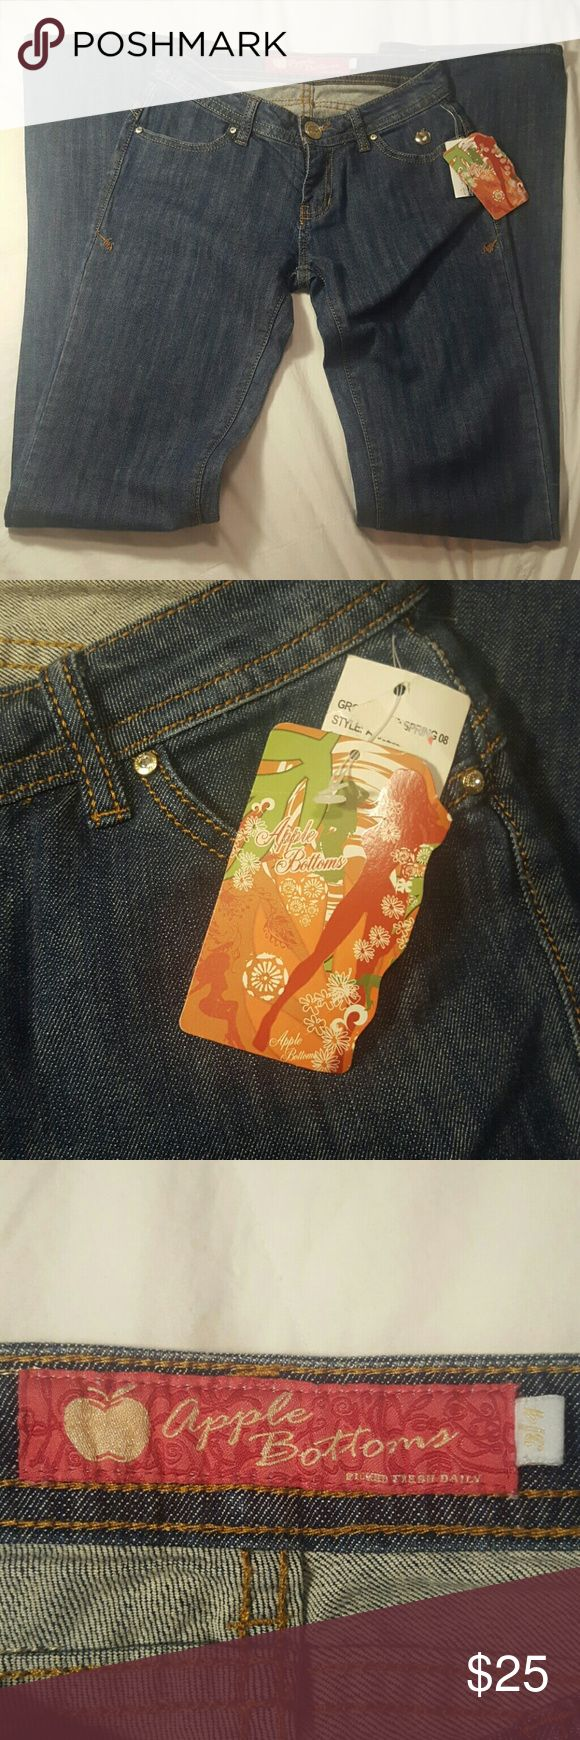 Apple Bottom Jeans NWT Super cute Apple Bottoms Original tags, perfect condition. Apple Bottoms Jeans